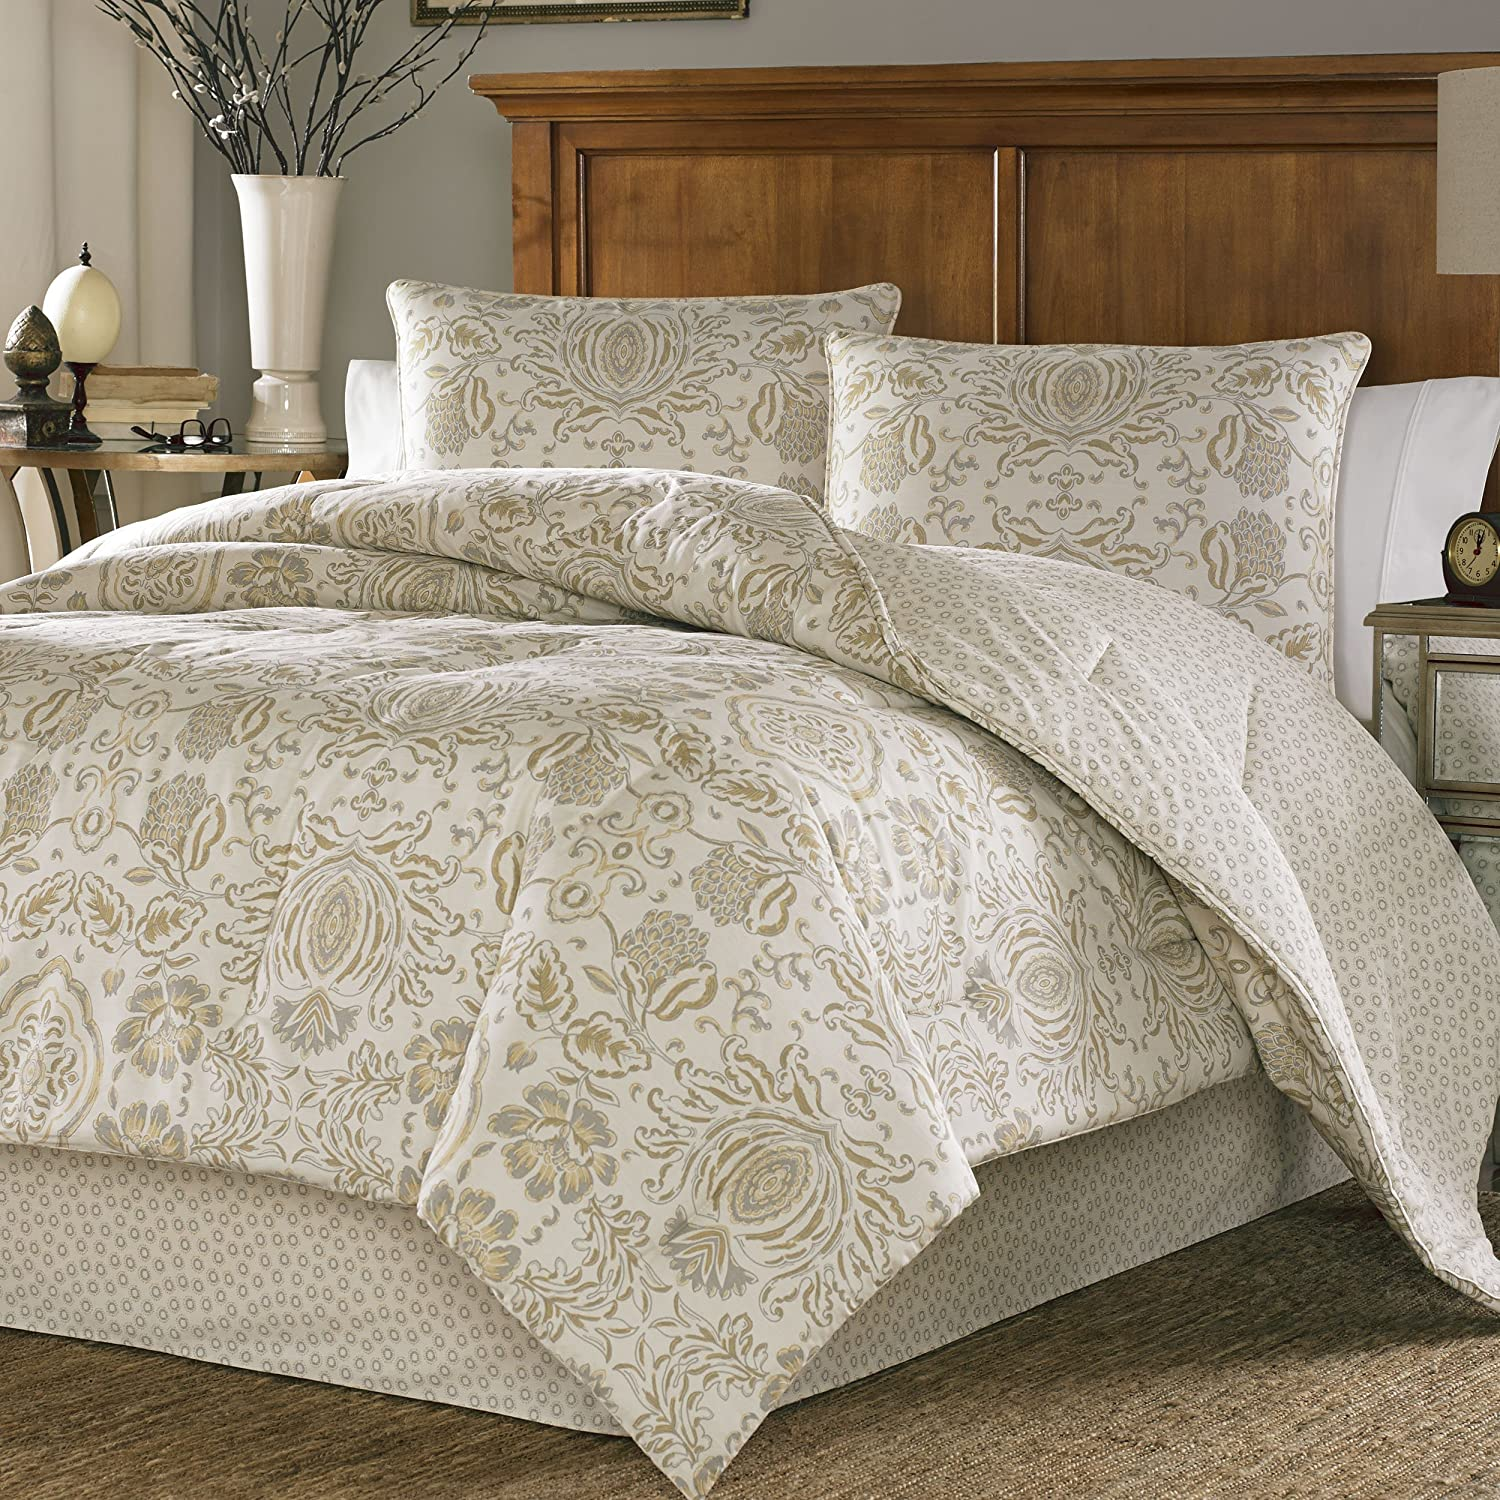 set beige kitchen dp stone belvedere home amazon cottage comforter com sateen king piece